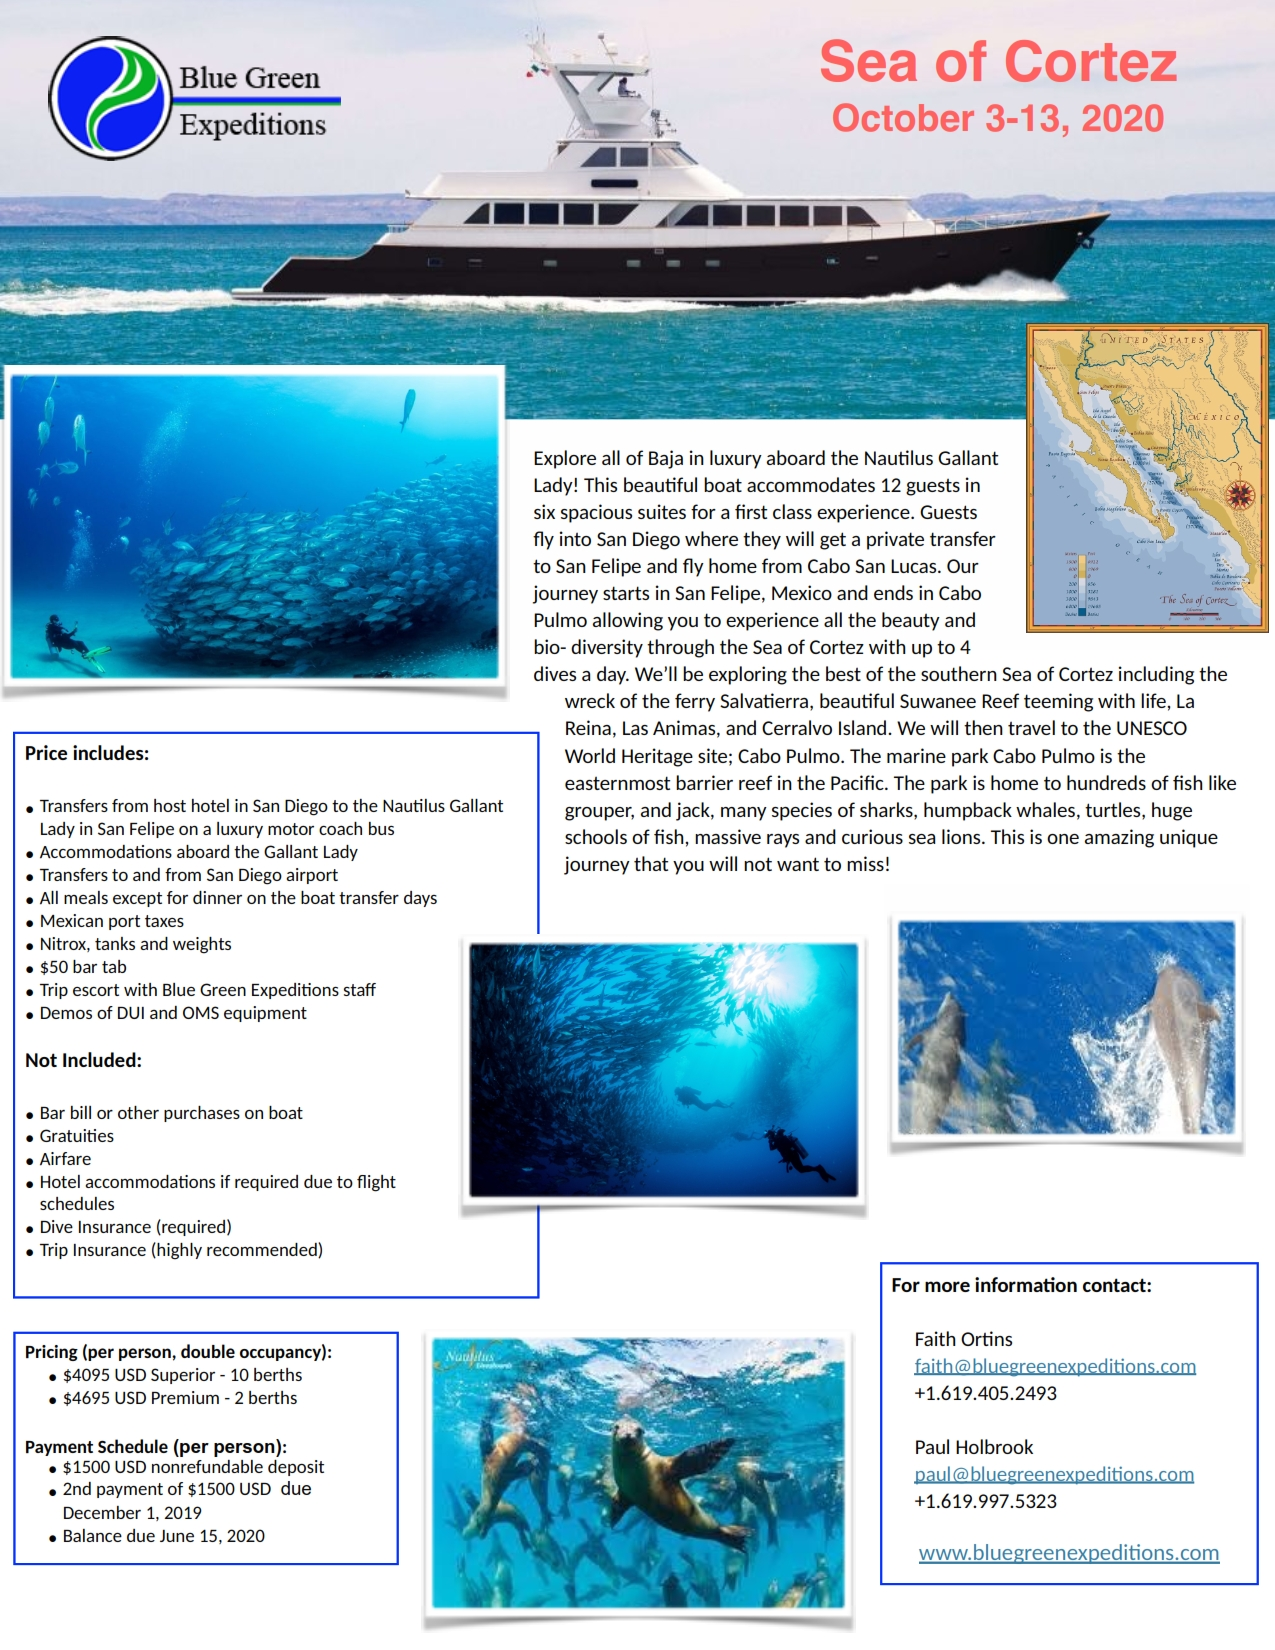 Sea of Cortez, October 3-13, 2020. Expedition description and pricing. PDF flyer contains the same information.